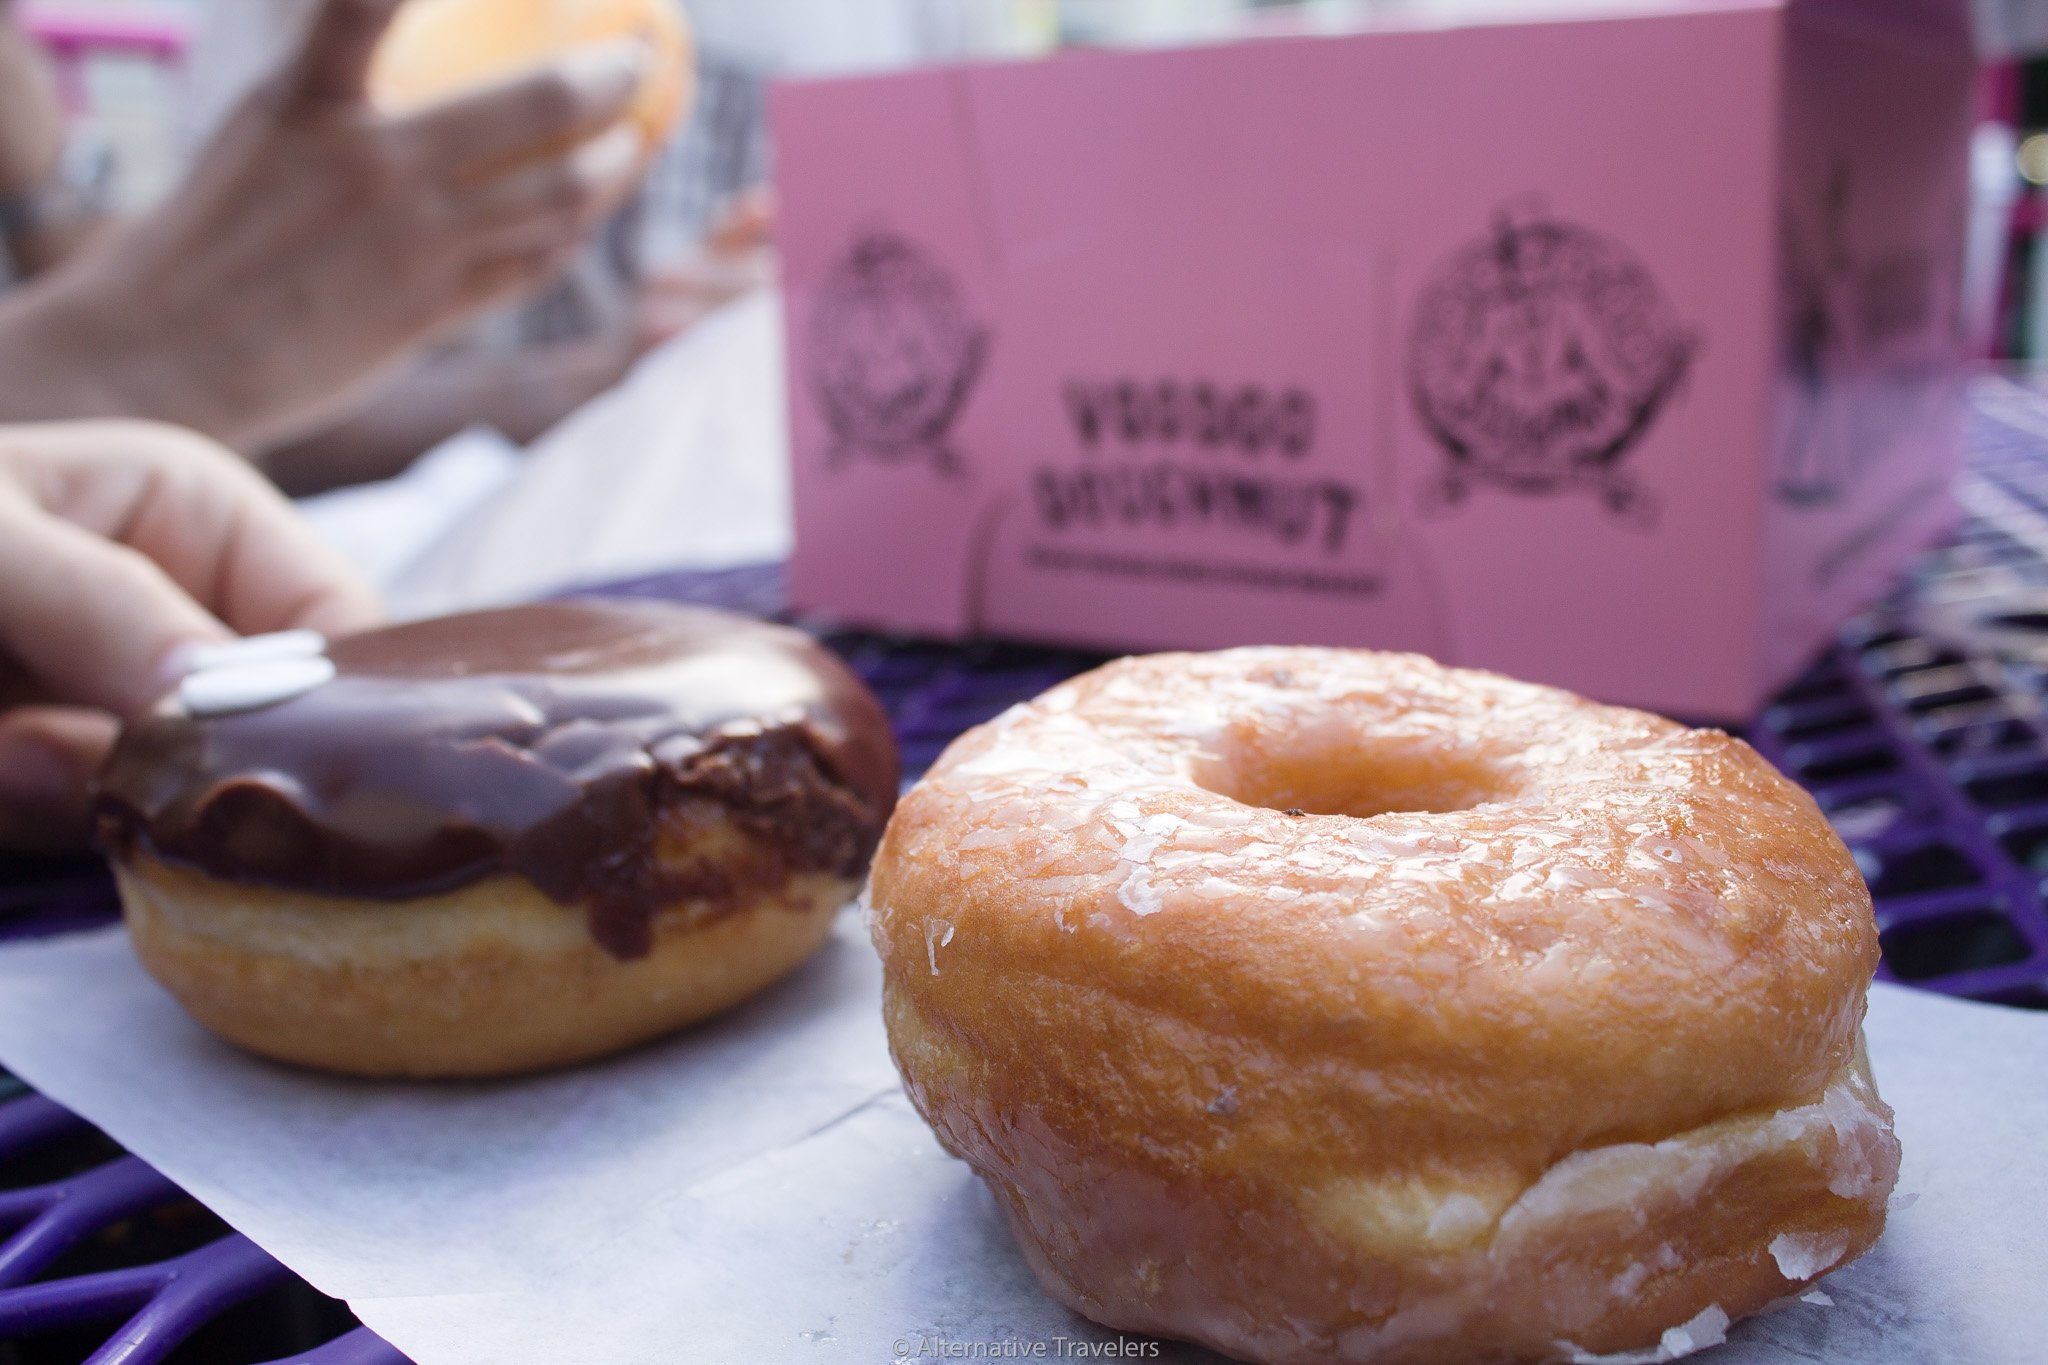 glazed and chocolate iced vegan donuts in Portland at Voodoo Donuts.